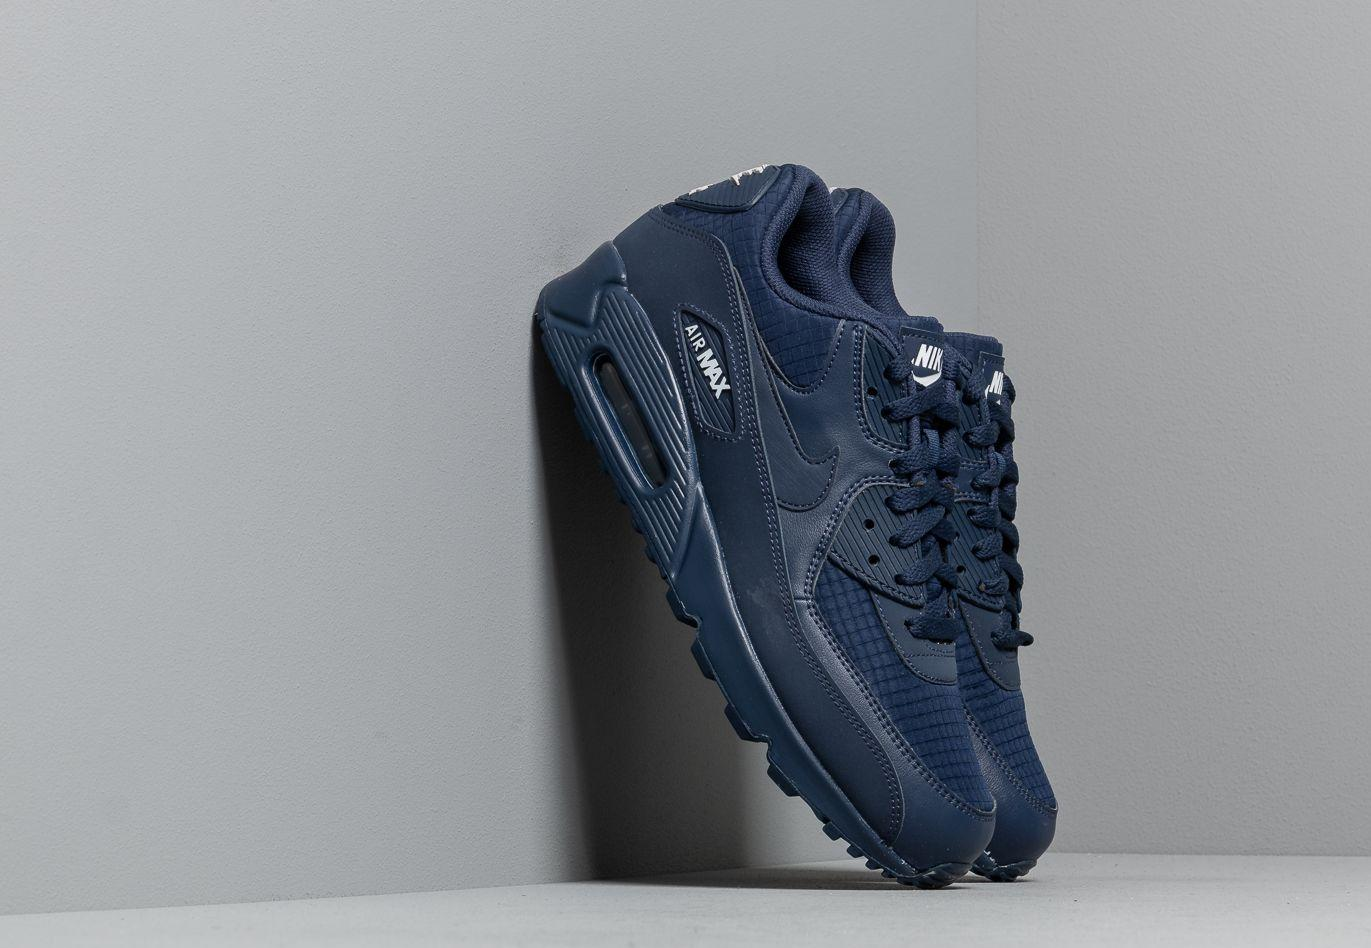 afae9141a2ab Lyst - Nike Air Max 90 Essential Midnight Navy/ White in Blue for Men